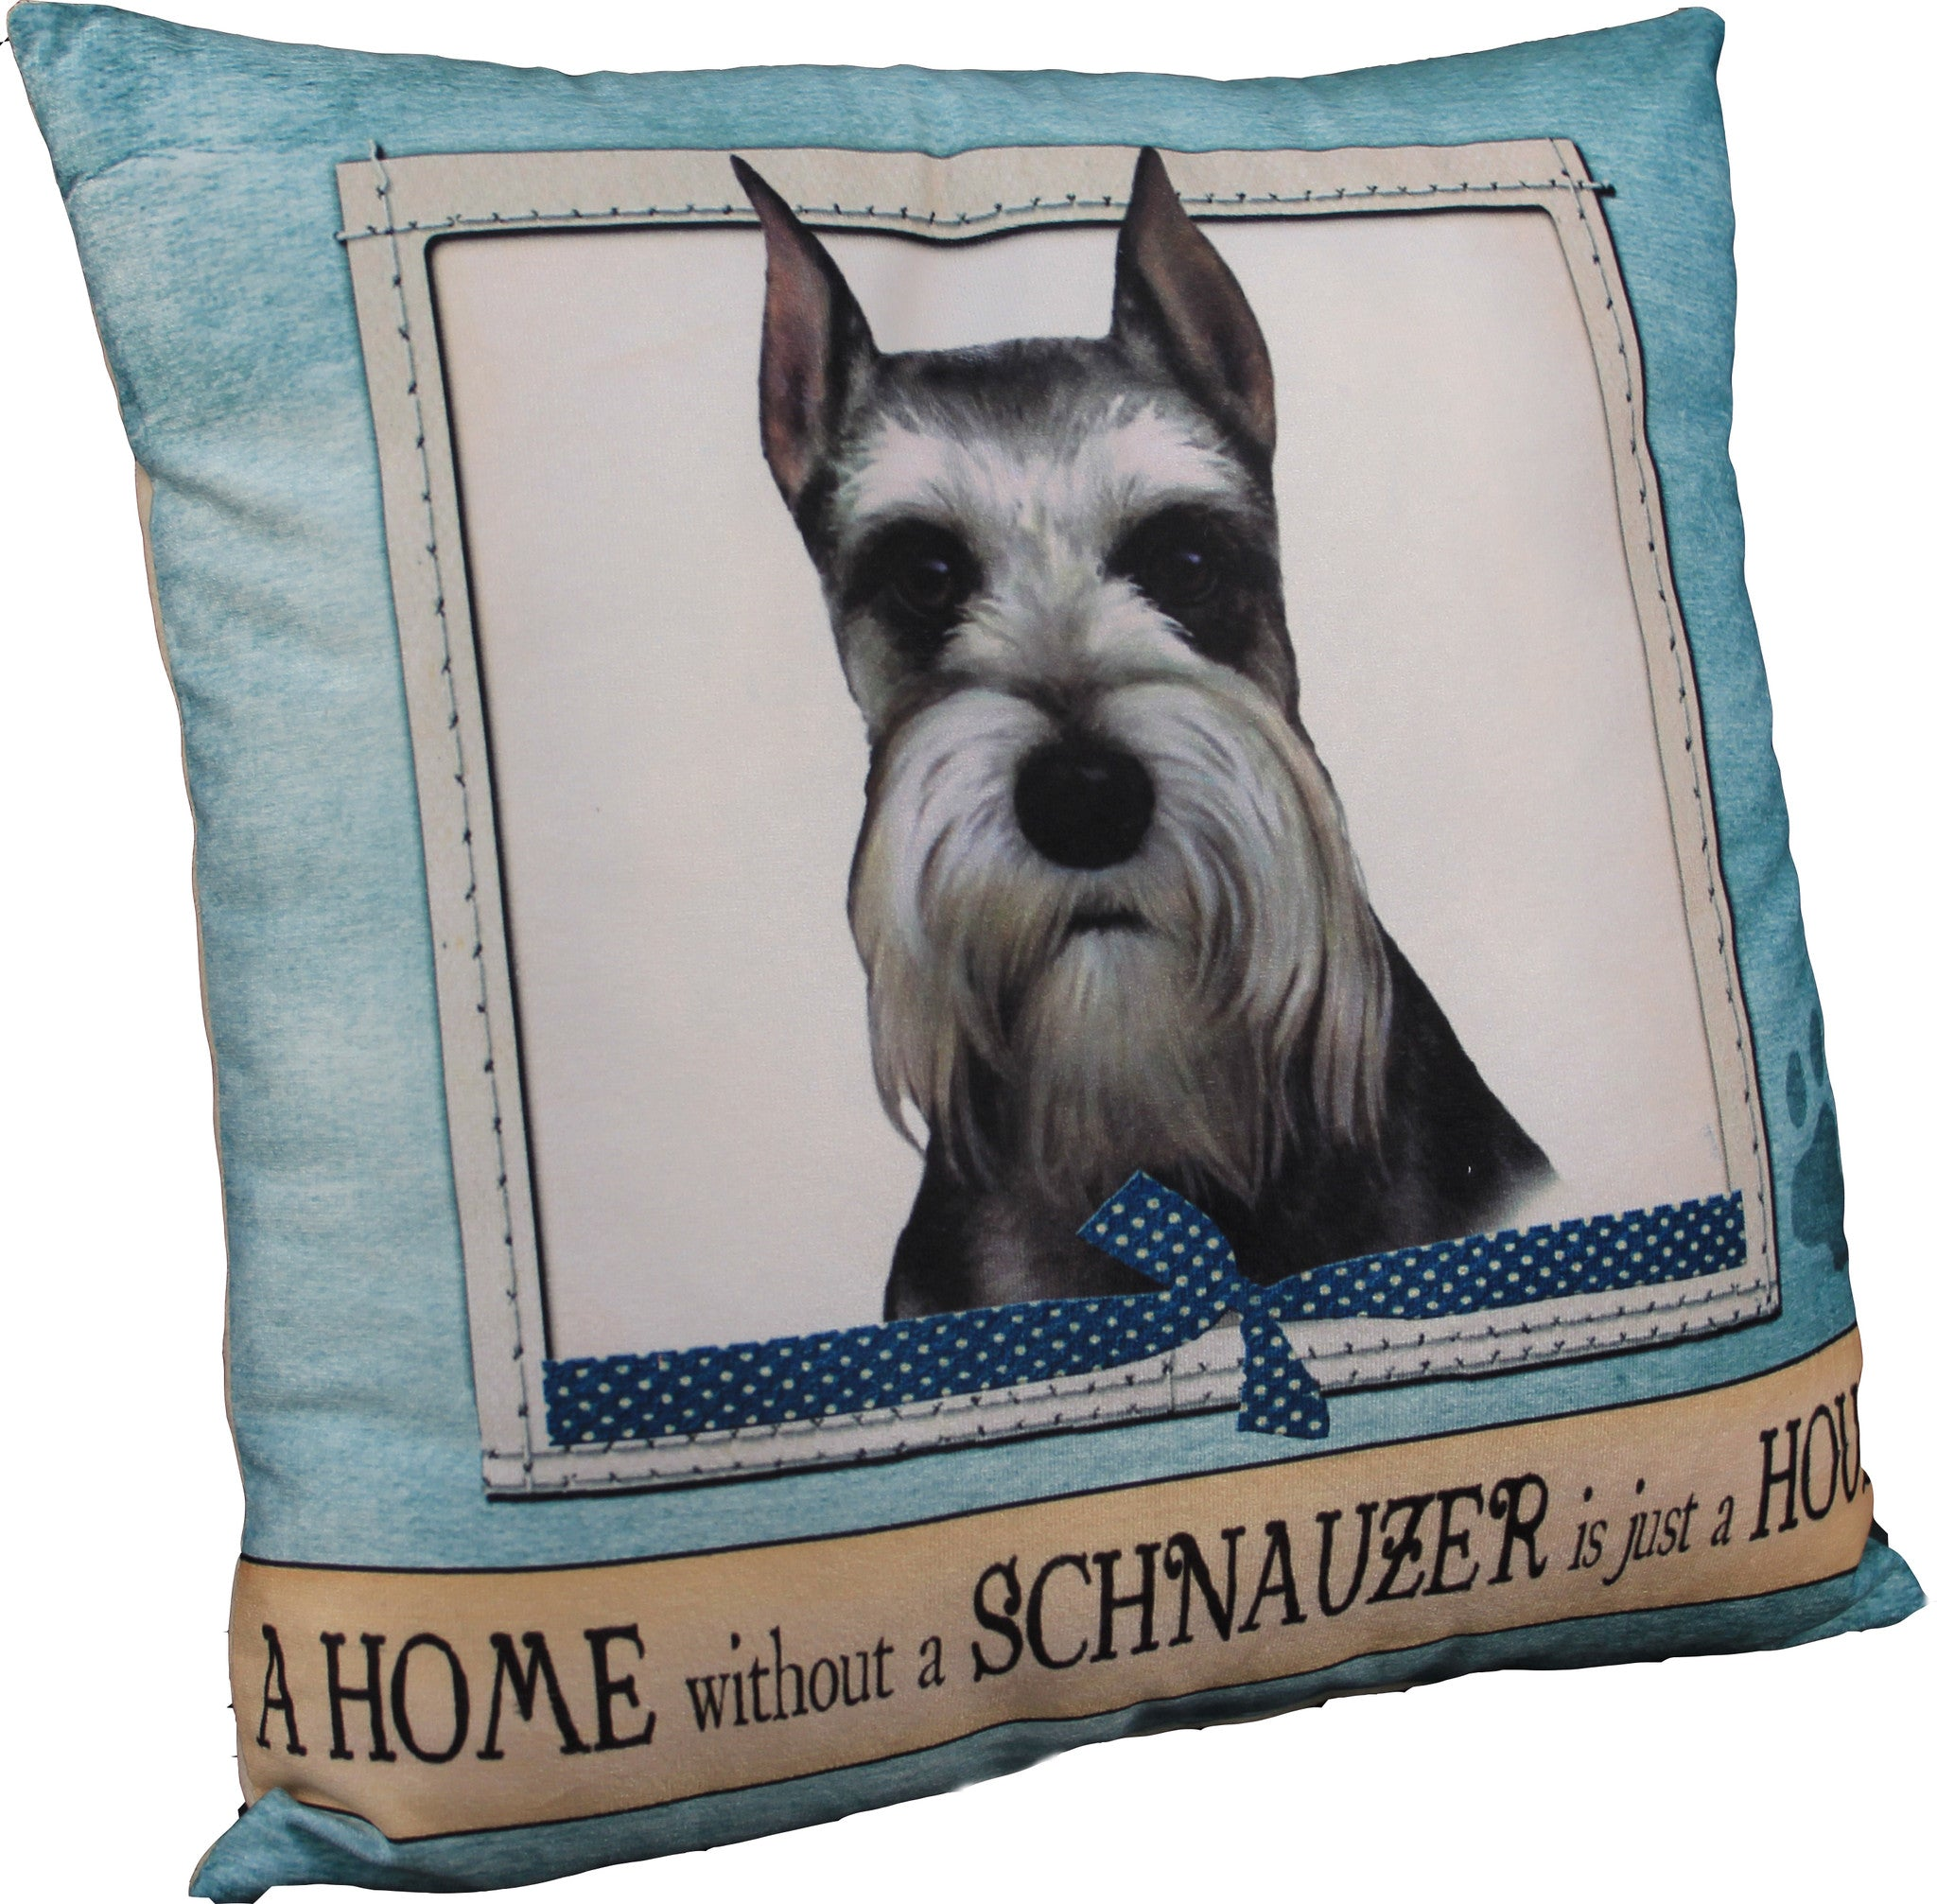 "Measures approx 16"" x 16"" Outside is 100% Polyester Inside stuffed with 100% Polyester Make your sofa a friendlier place with this lovable dog throw pillow which is available for a wide range of breeds. Each of these decorative pillows features a large picture of a particular breed of dog, along with the message ""A HOME without a 'dog breed' is just a HOUSE""."